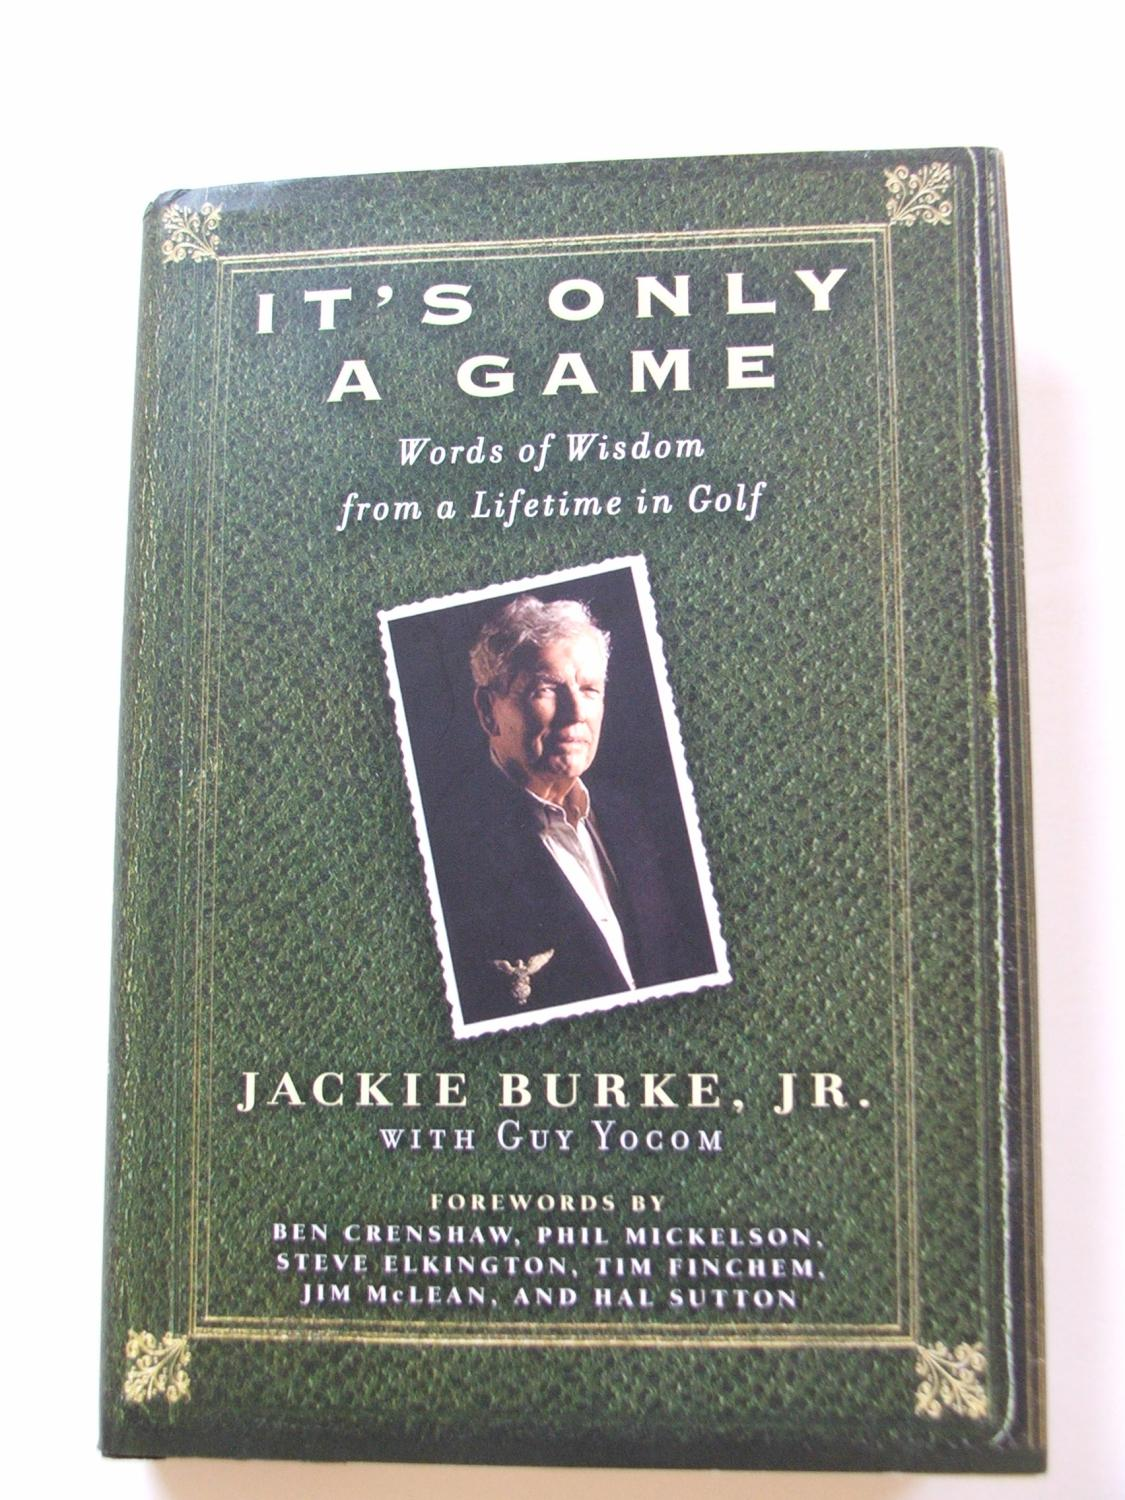 Its Only a Game: Words of Wisdom from a Lifetime in Golf